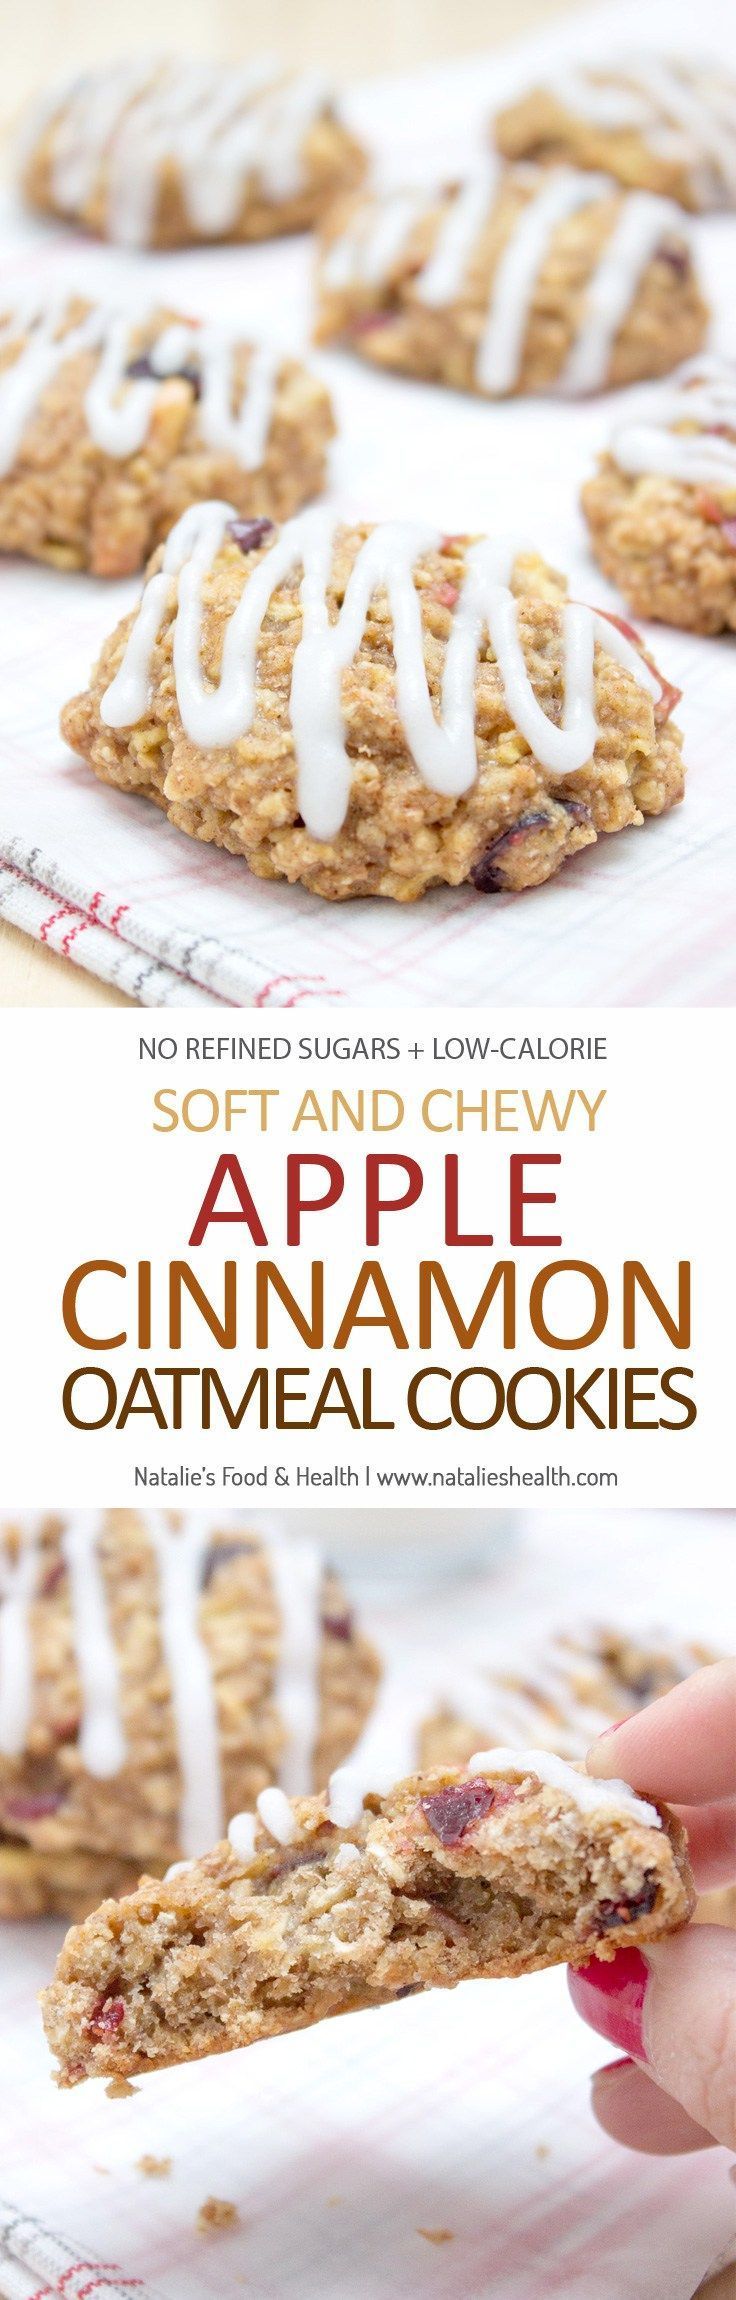 Fragrant, soft and chewy Apple Cinnamon Oatmeal Cookies are perfect high-fiber breakfast or healthy snack ready in just 20 minutes. These cookies are very nutritious, made with all healthy ingredients and contain no refined sugars. CLICK to grab the recip Come and see more a bakedcomfortfood.com